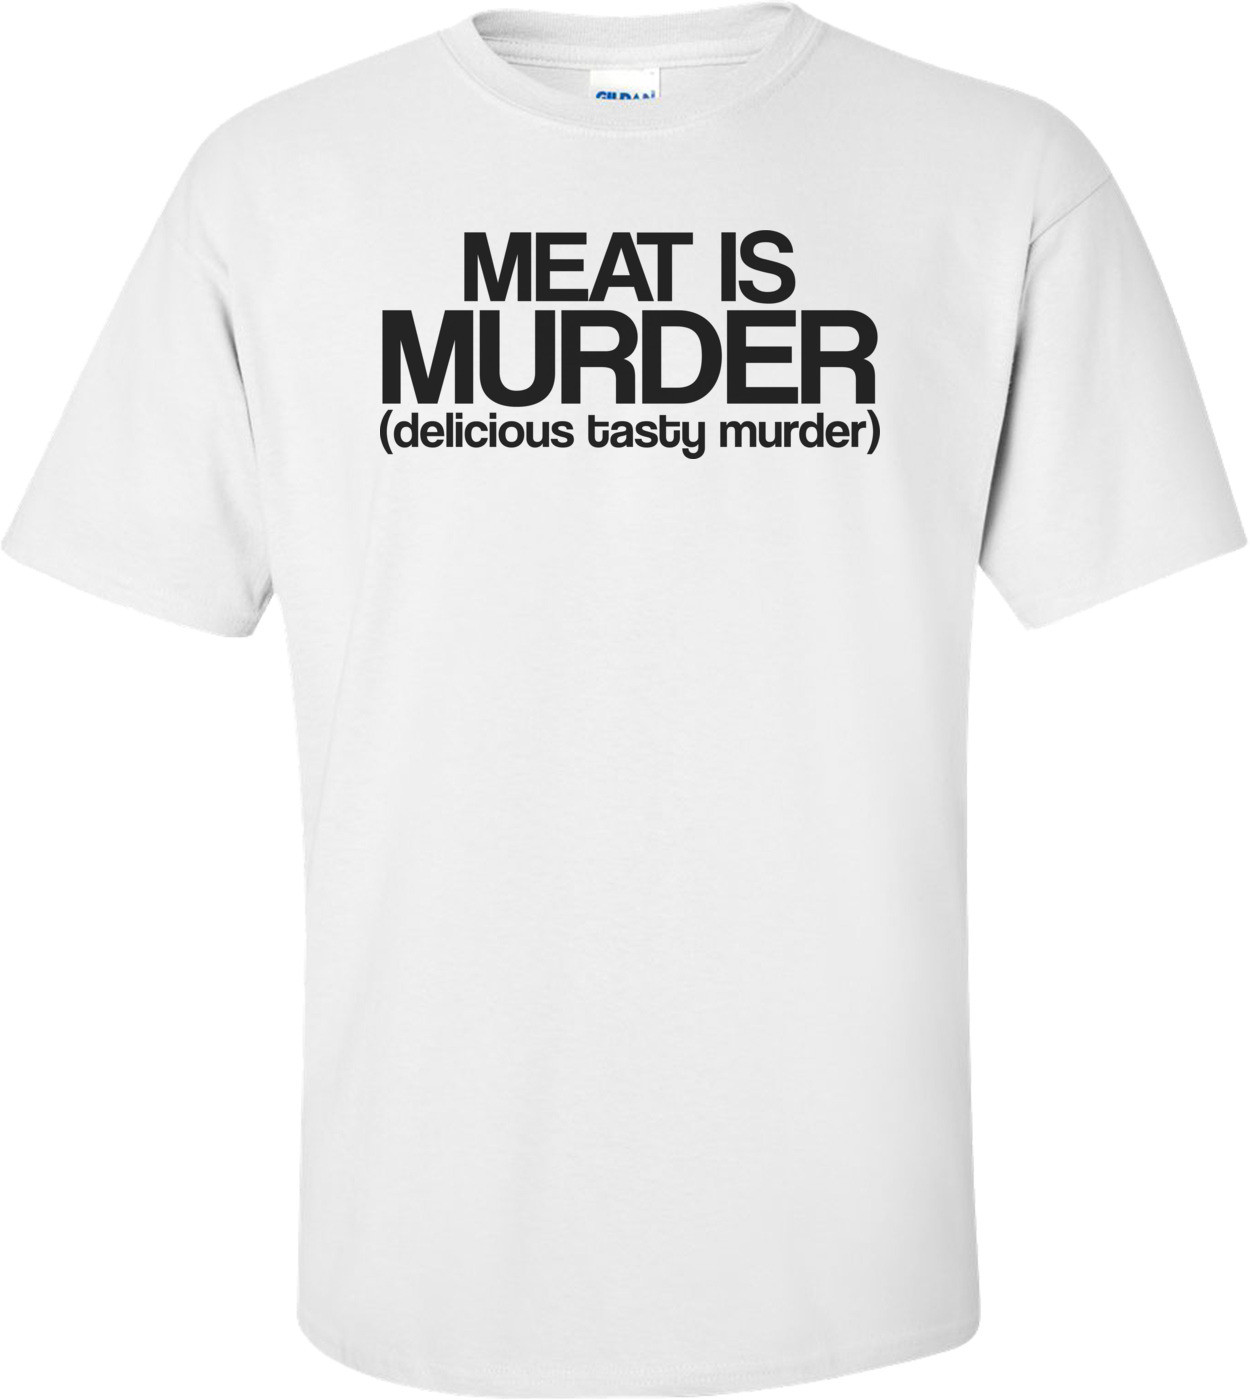 Meat Is Murder Tasty Tasty Murder Funny Shirt